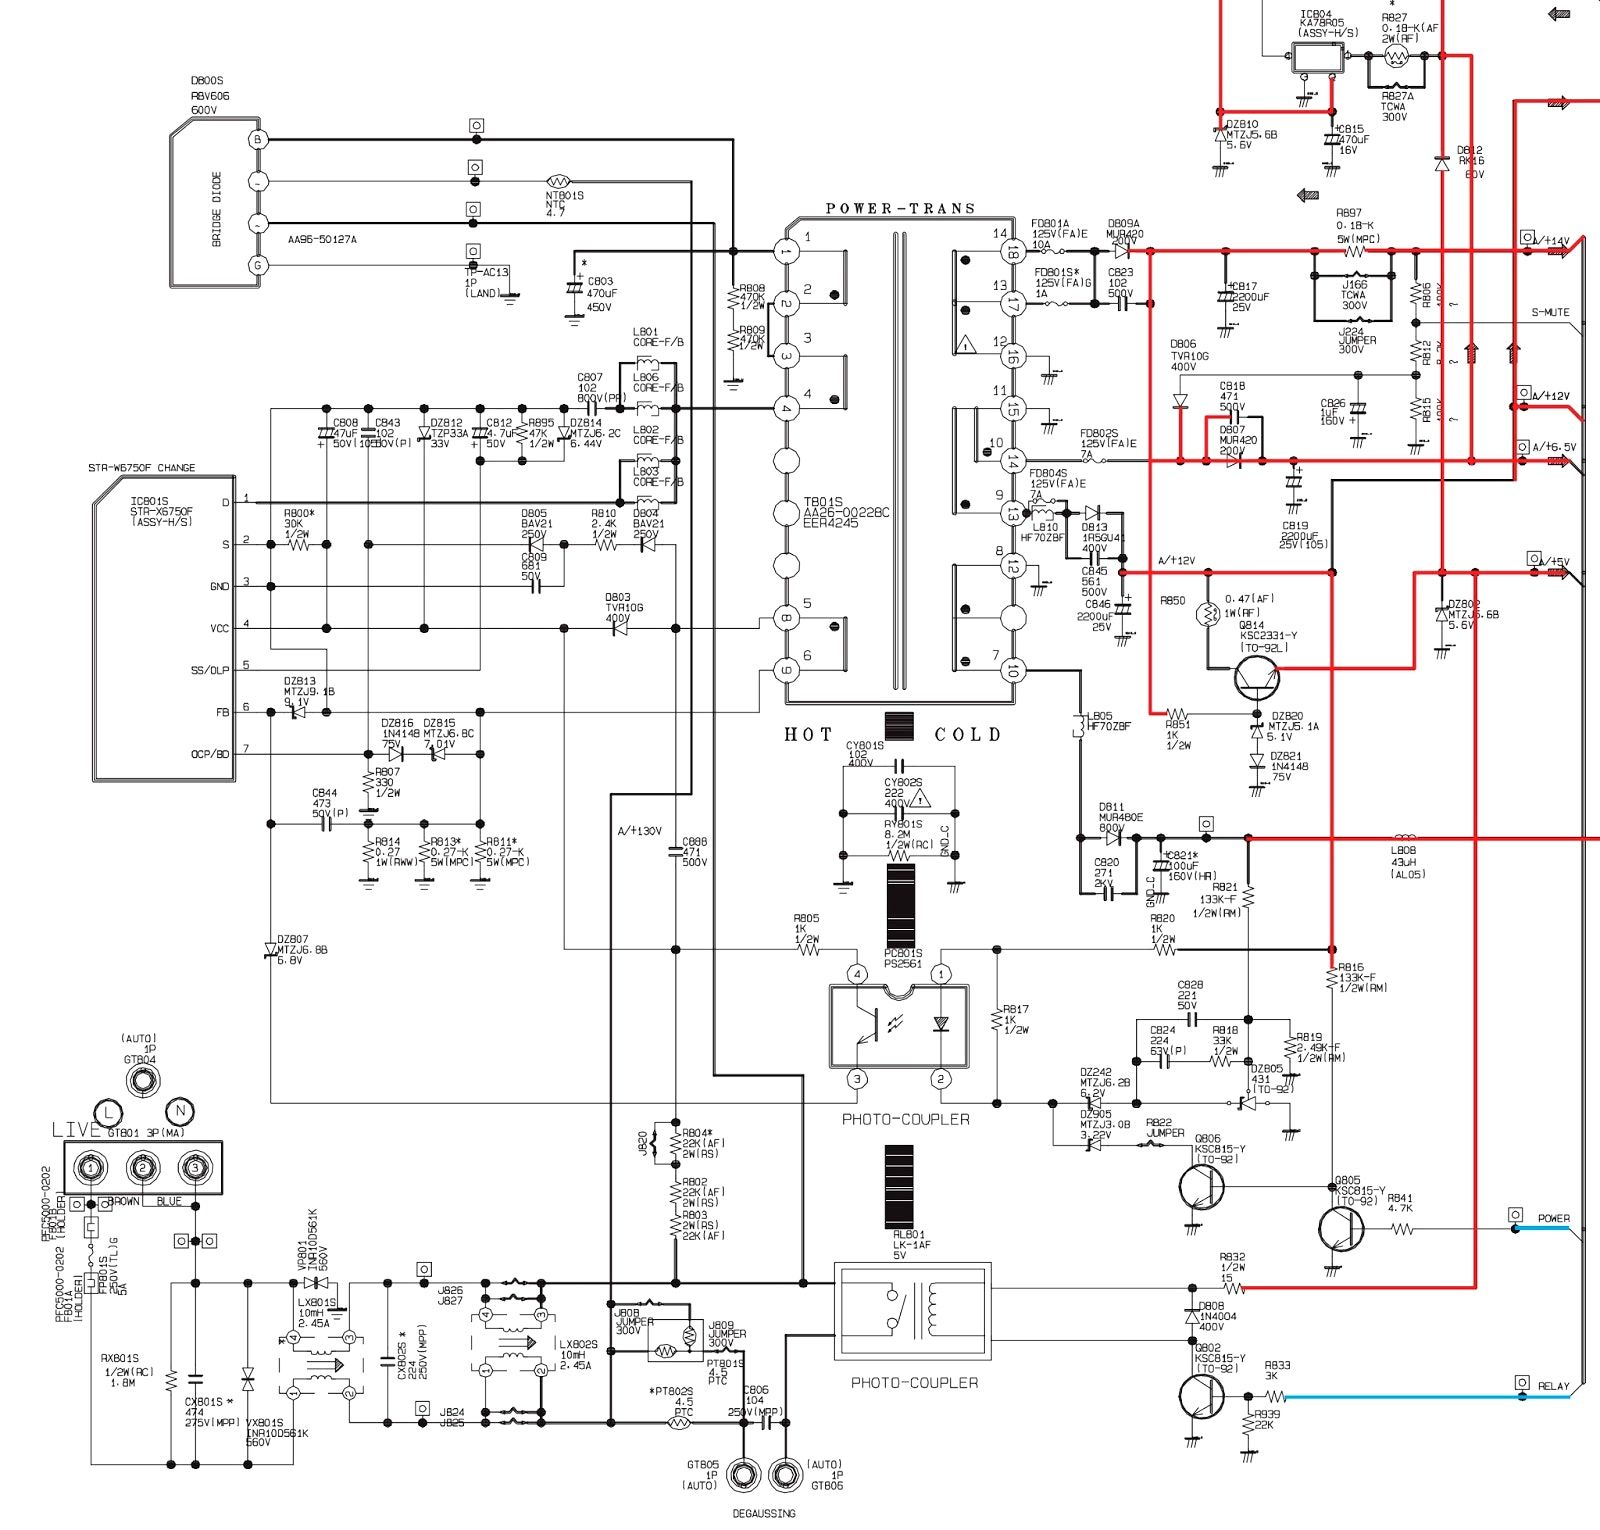 medium resolution of samsung led tv wiring schematic wiring diagrams the samsung usb wiring diagram led tv circuit diagram